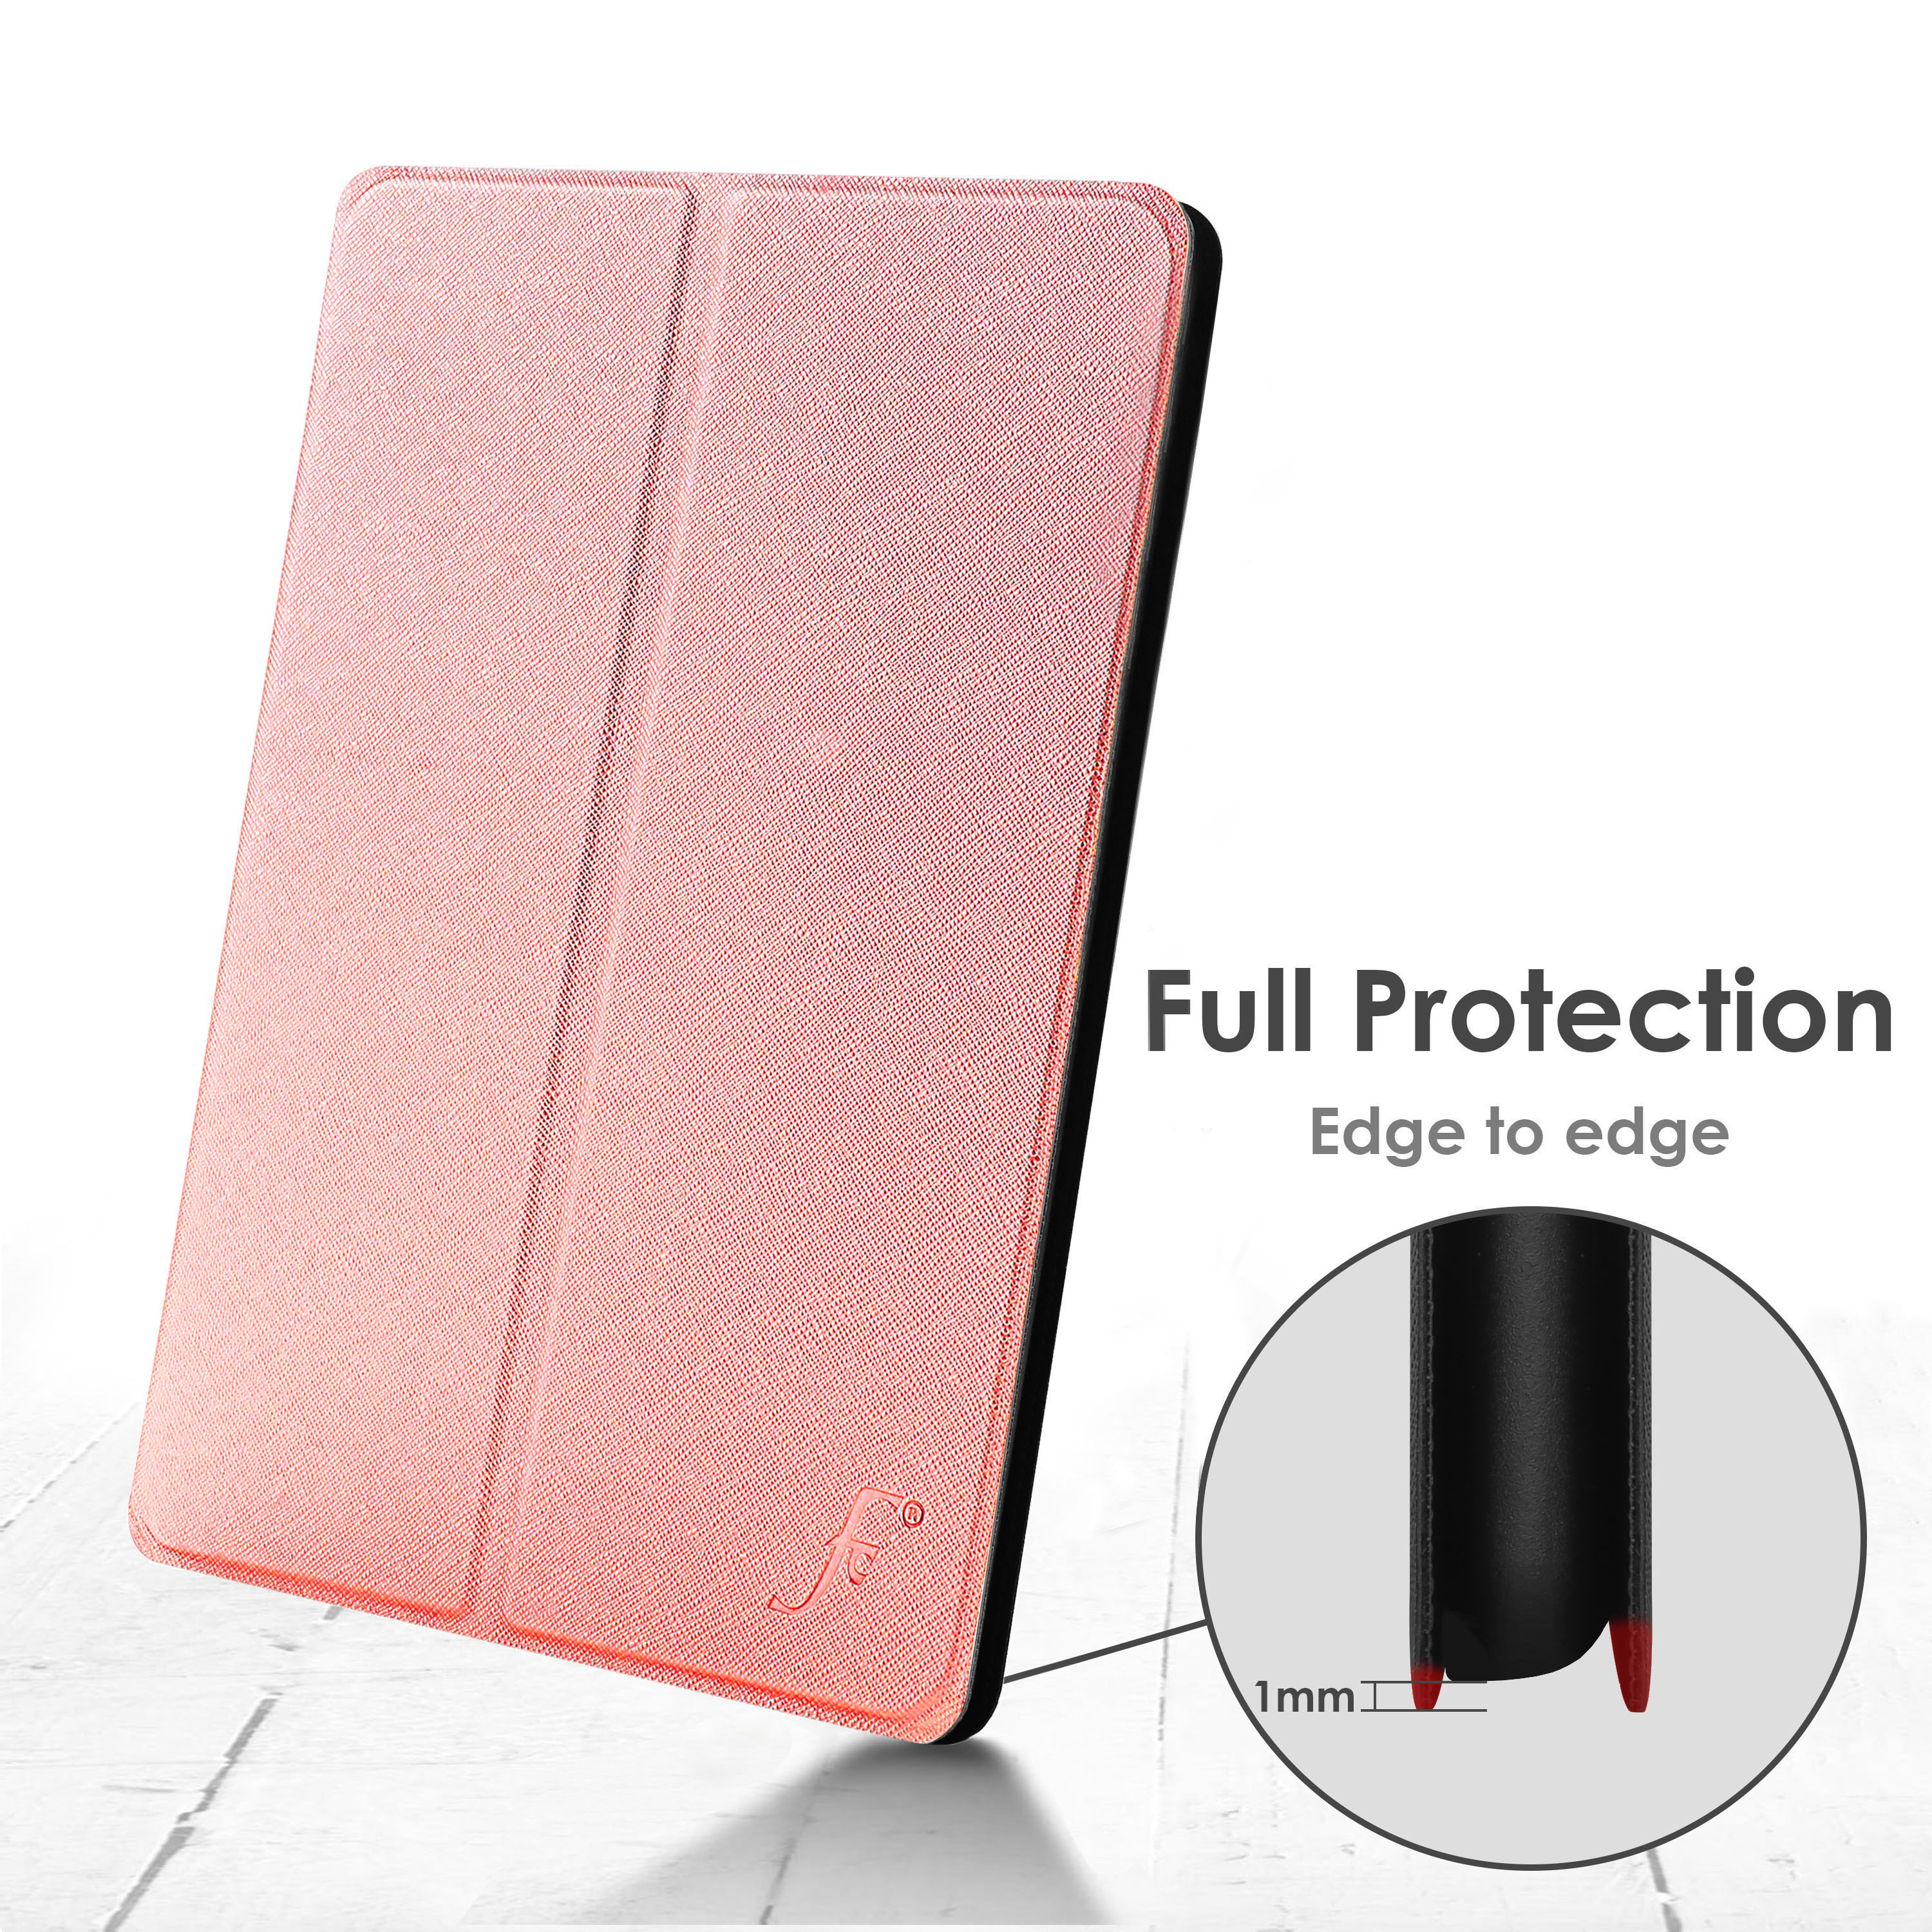 miniature 78 - Samsung Galaxy Tab A 10.1 2019 Étui Magnétique Protection & Support + Stylet